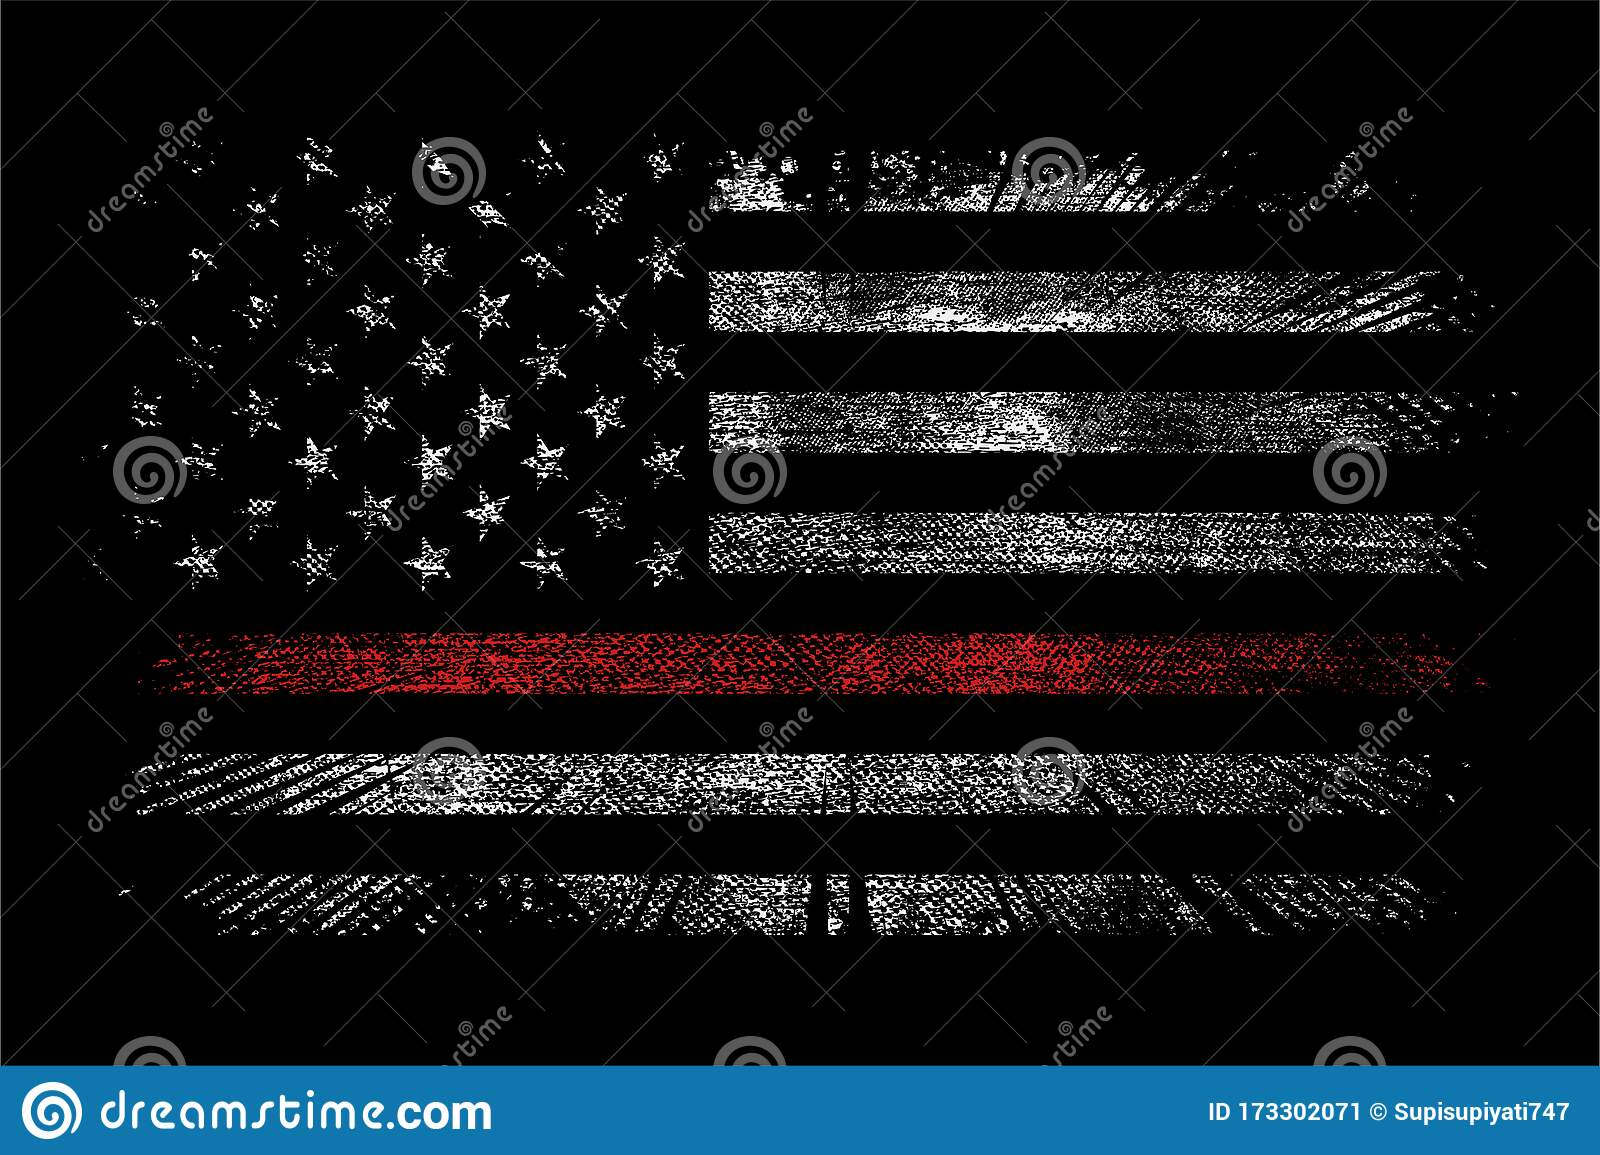 Grunge Usa Firefighter With Thin Red Line Wallpaper Background